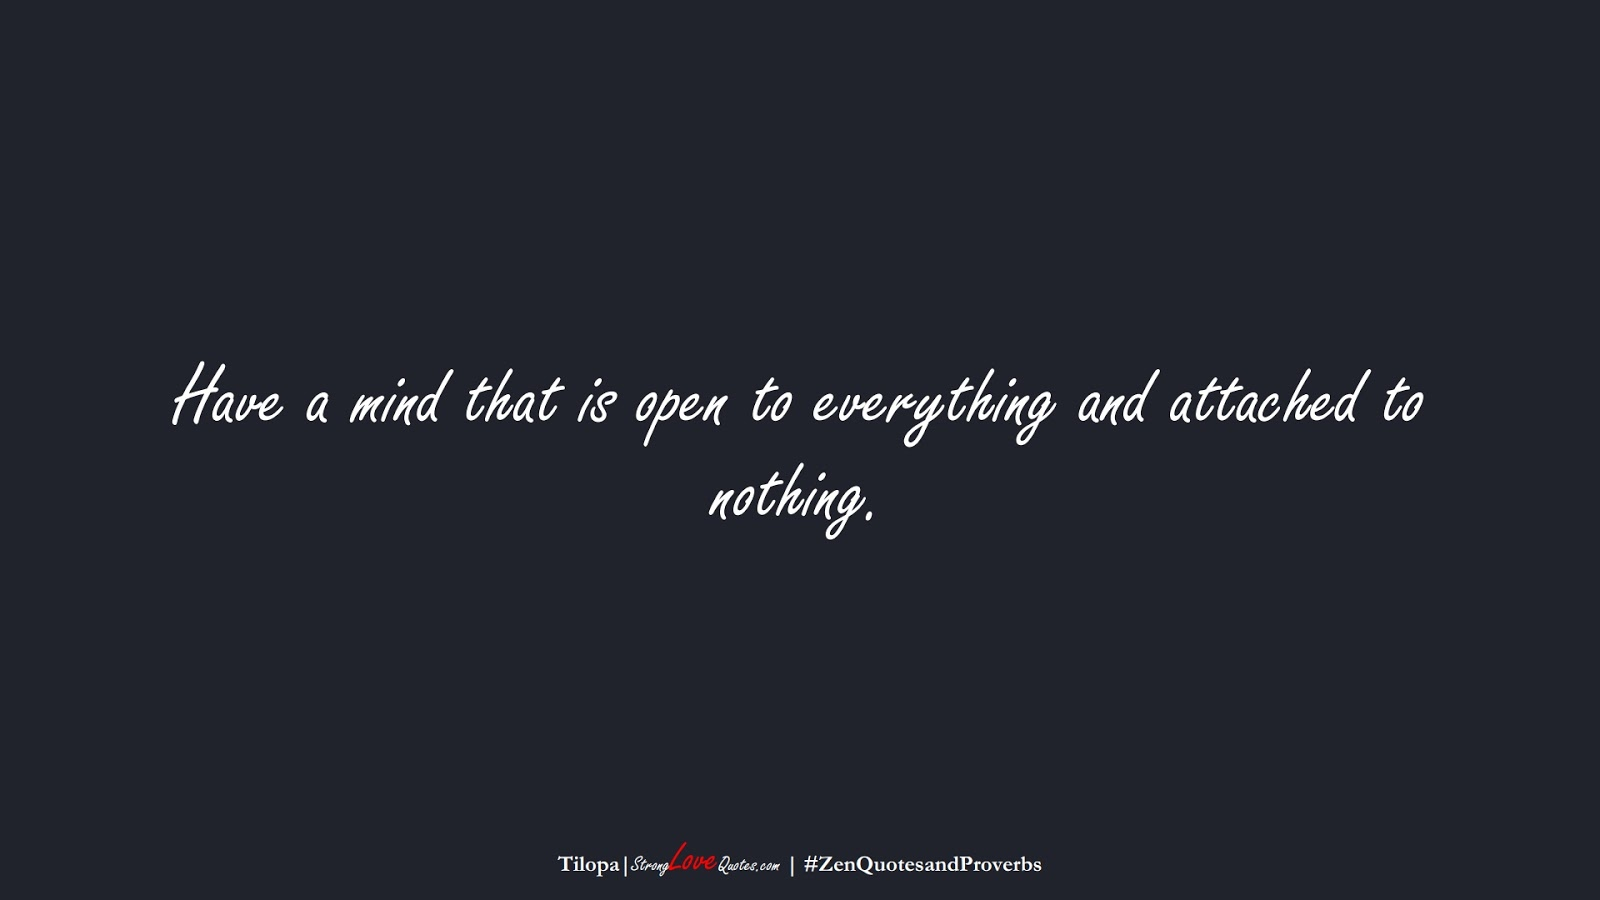 Have a mind that is open to everything and attached to nothing. (Tilopa);  #ZenQuotesandProverbs